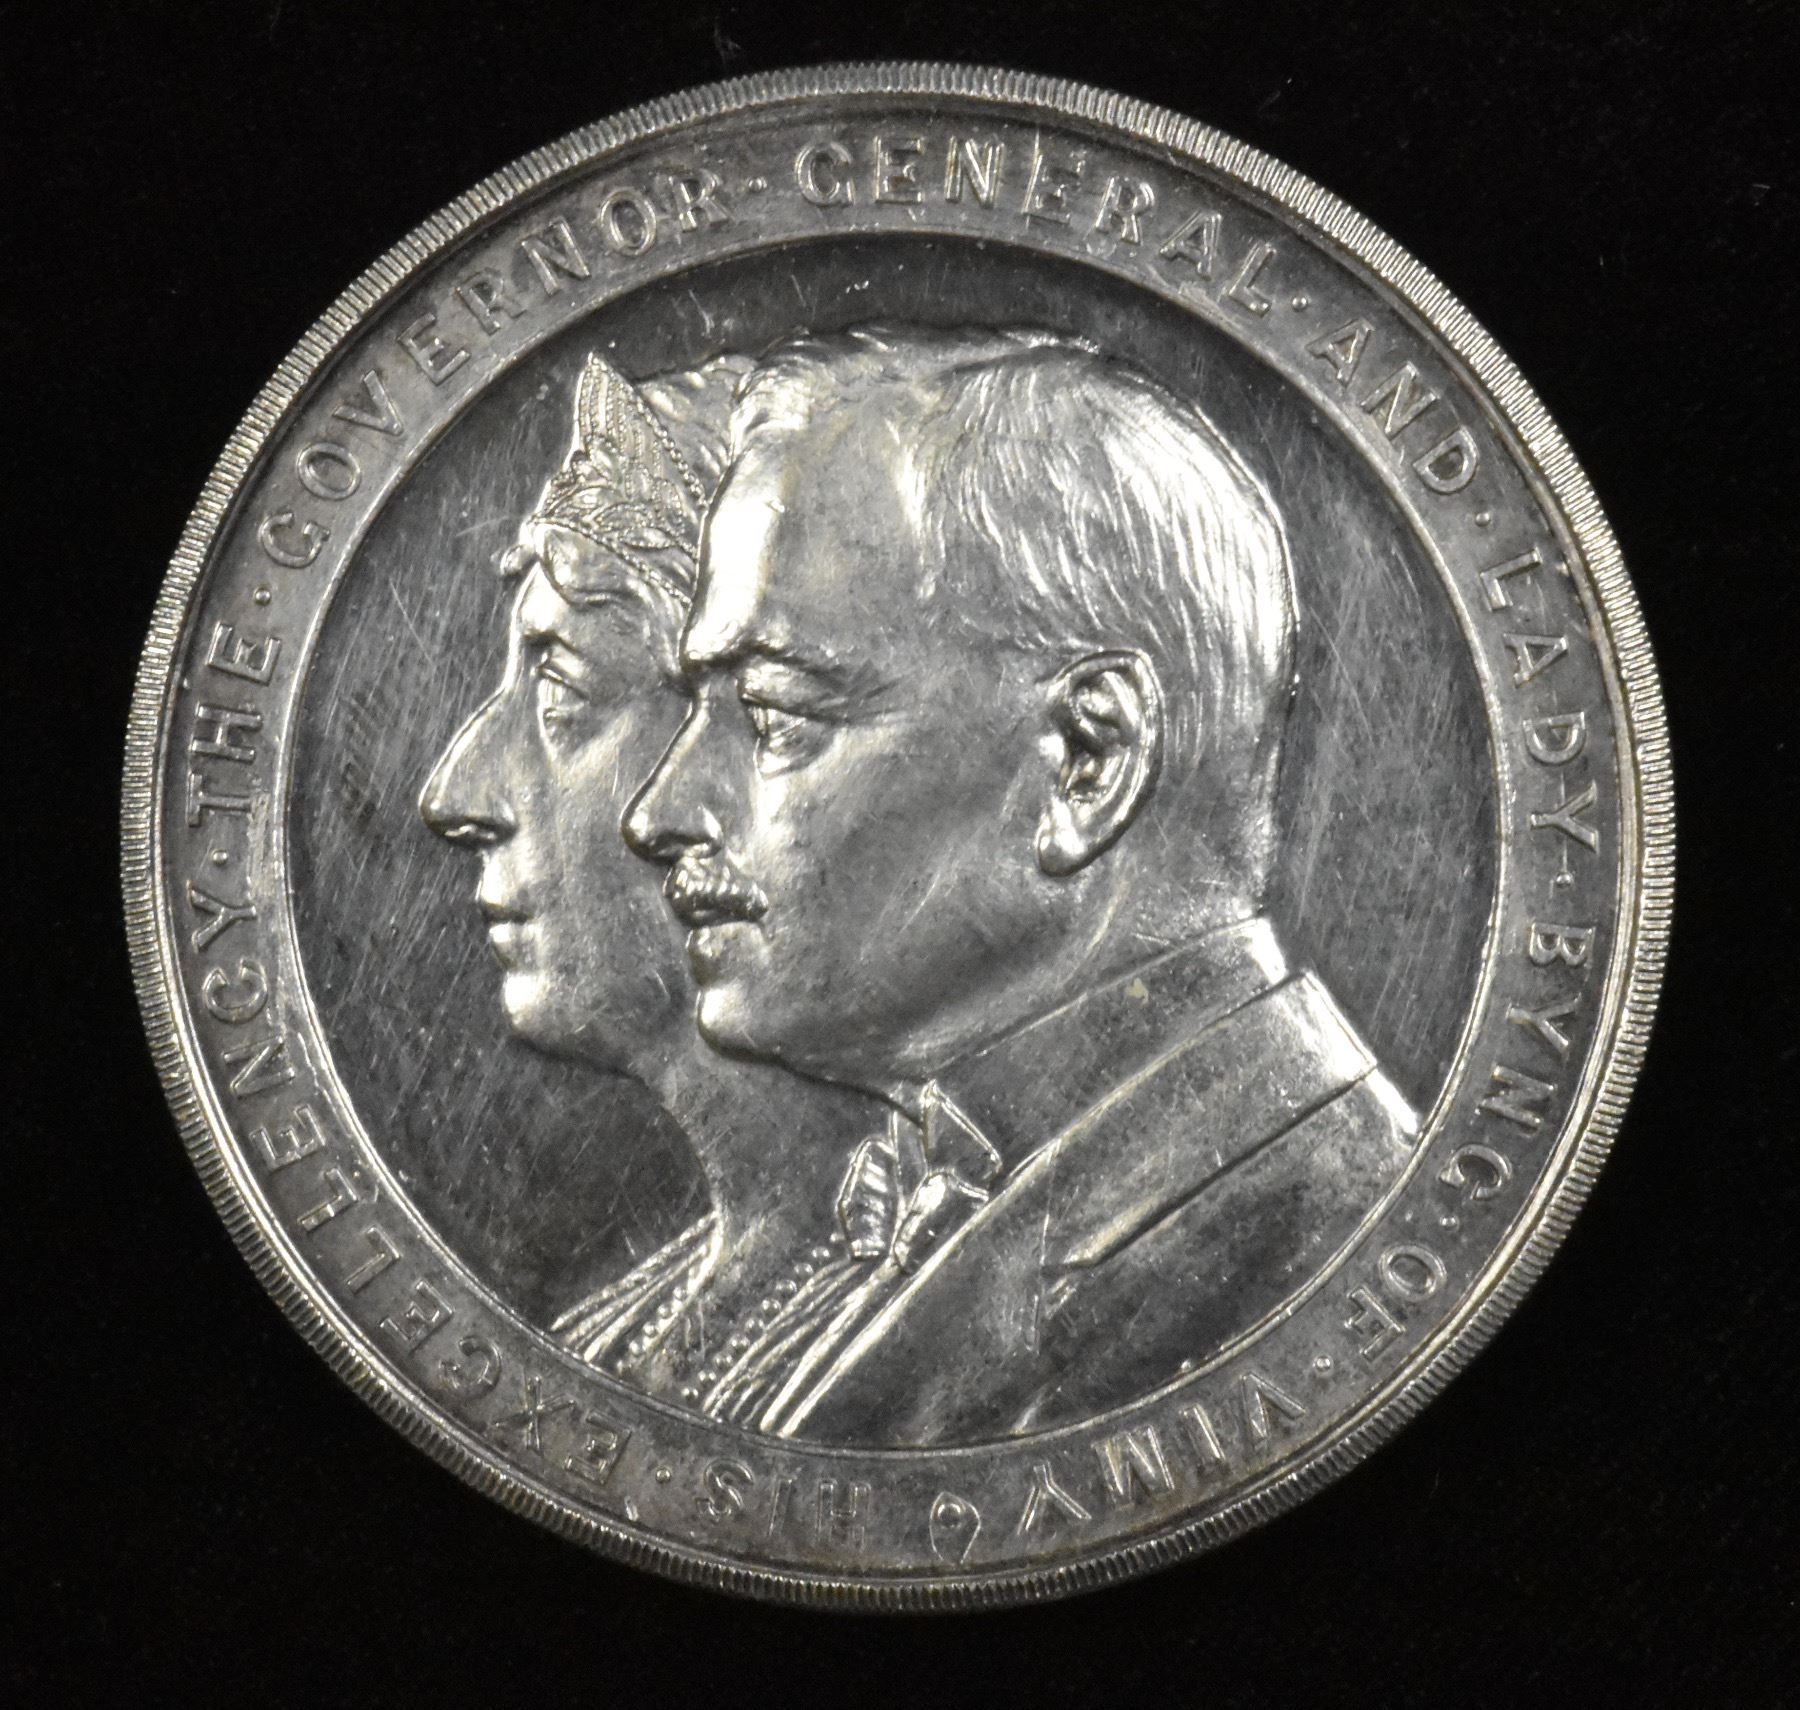 Governor General Medal - Geoffrey Bell Auctions